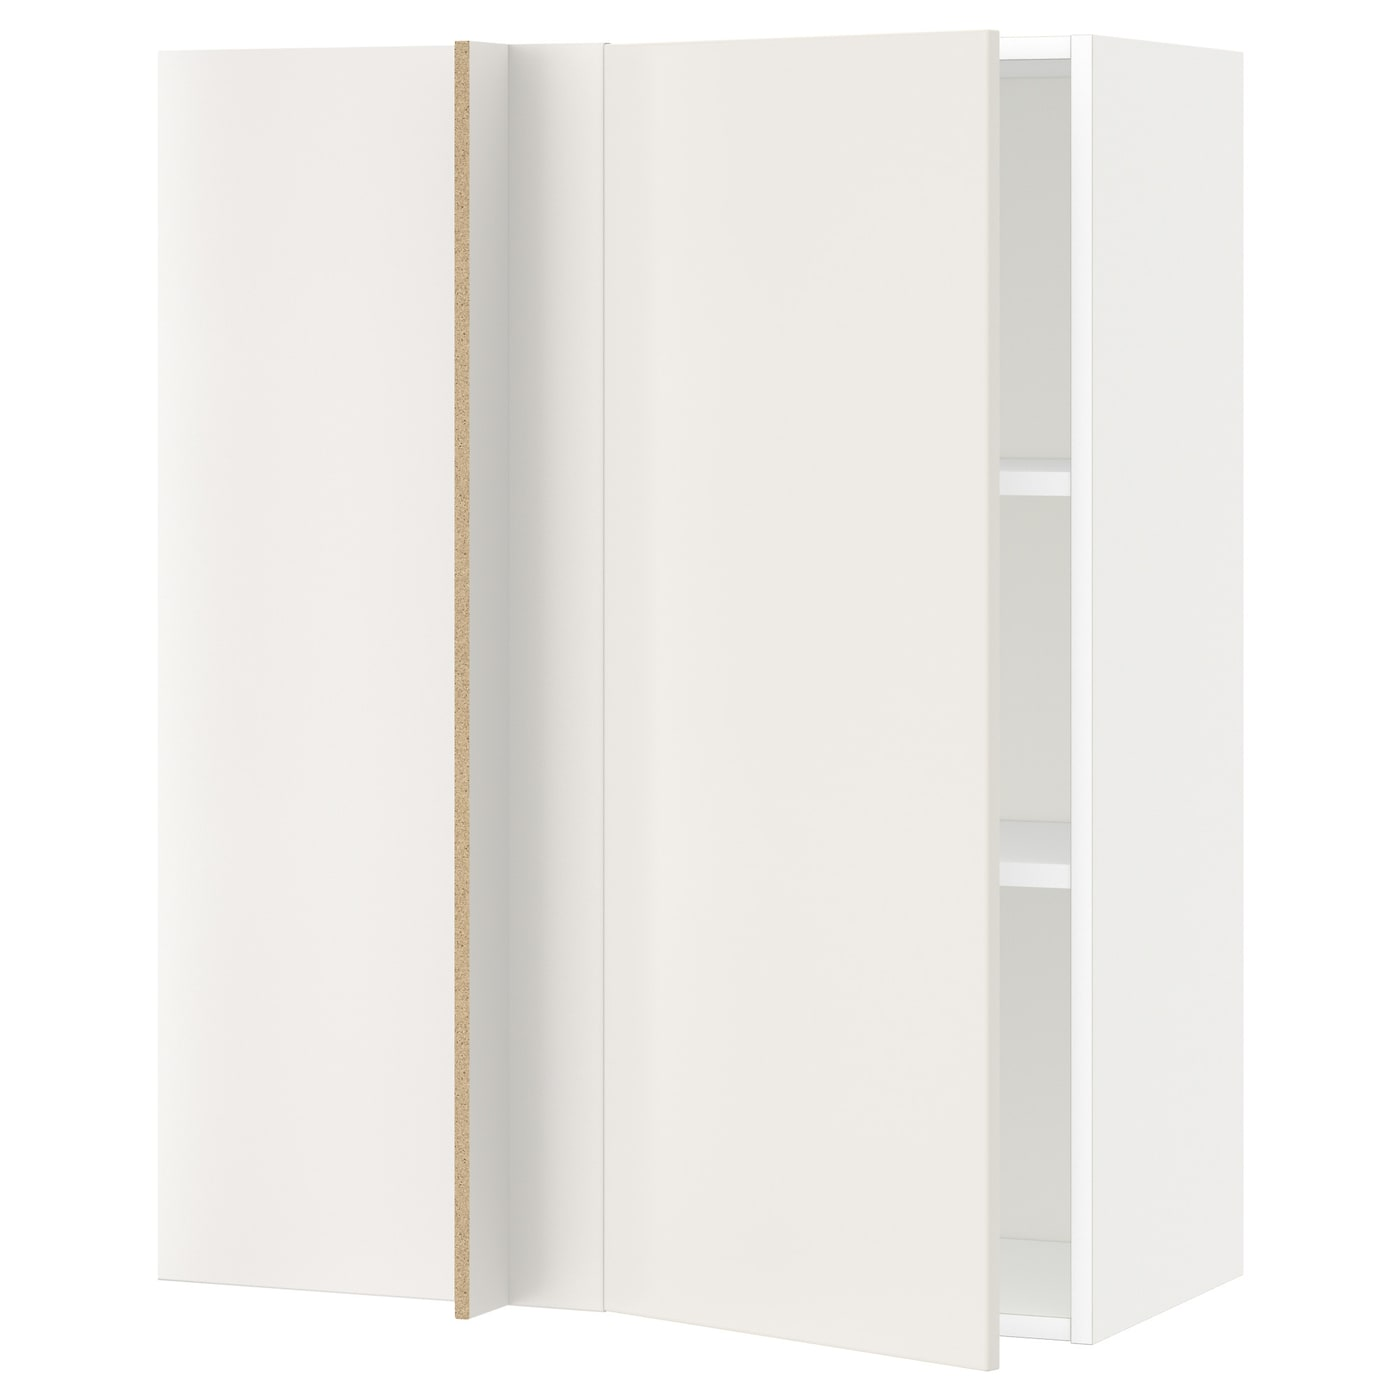 IKEA METOD corner wall cabinet with shelves